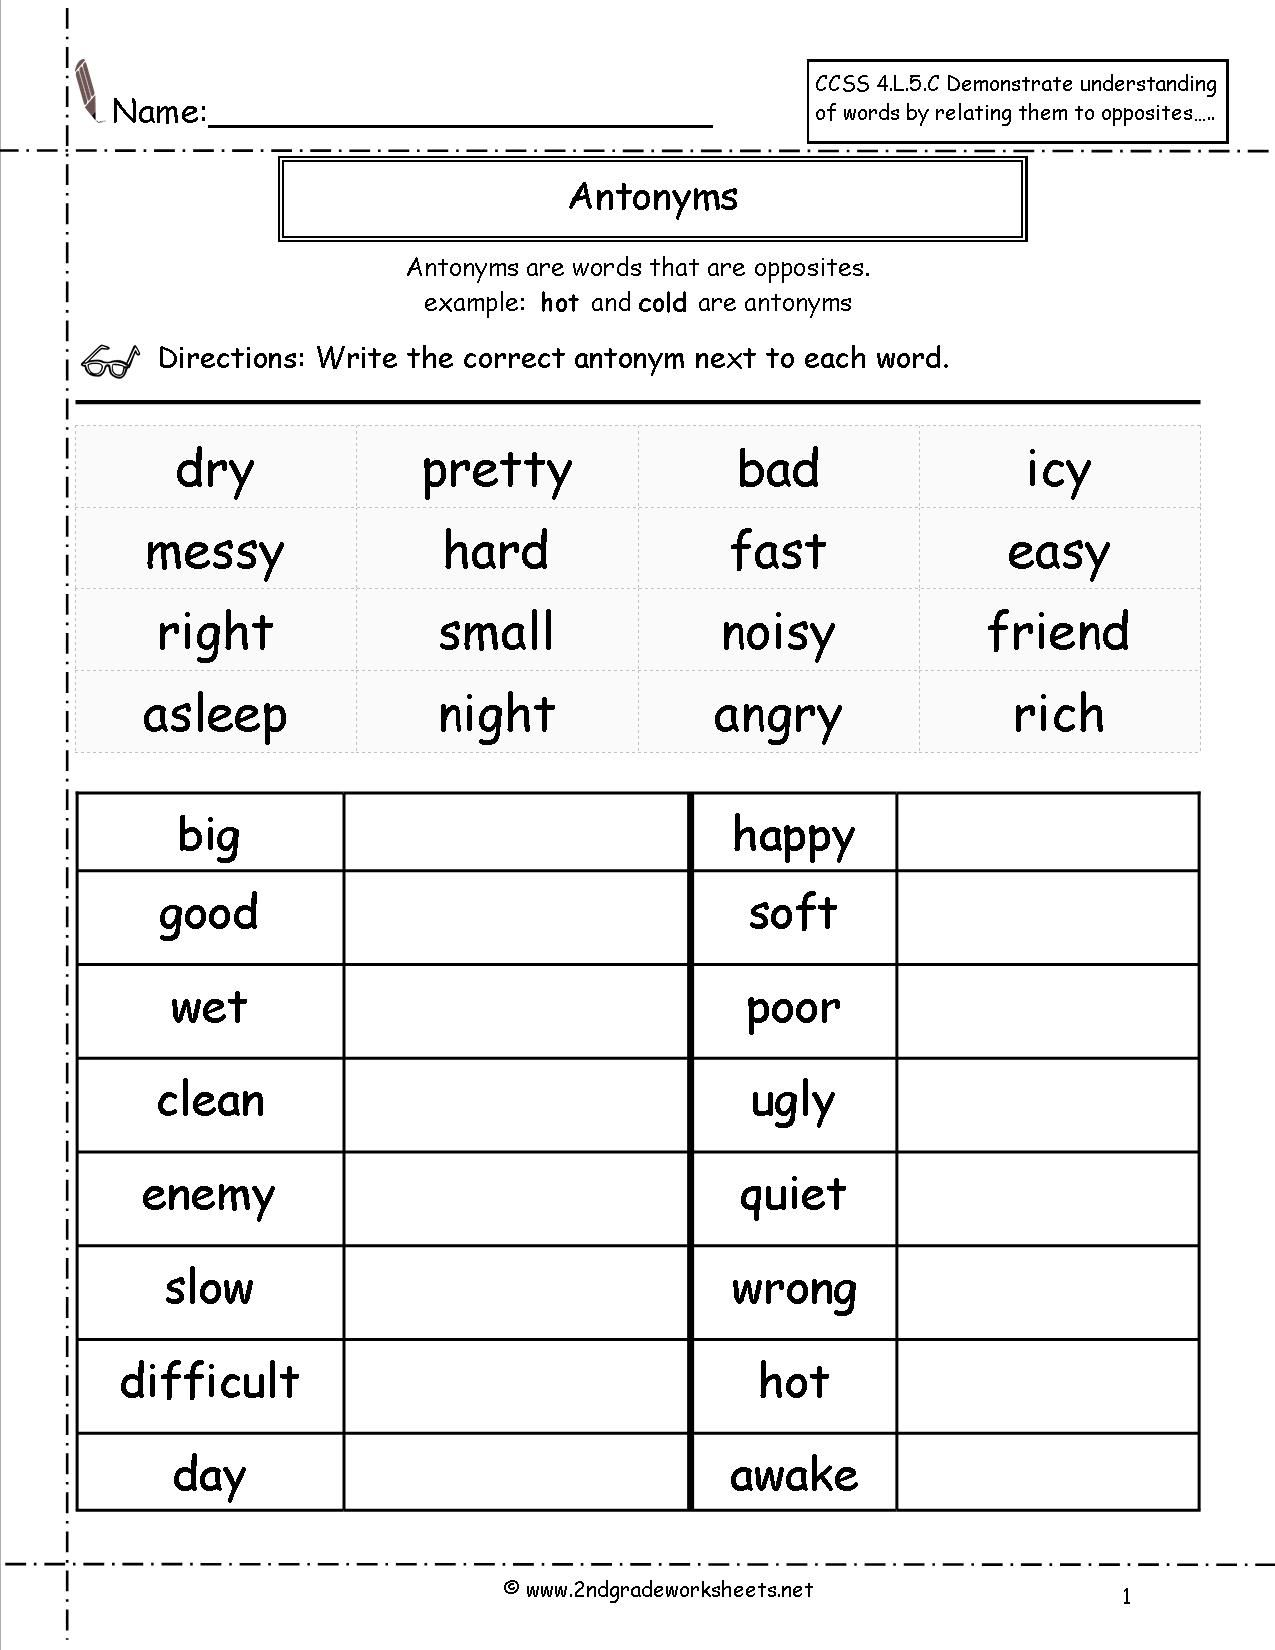 Antonyms Worksheet 2nd Grade Worksheets 1st Grade Worksheets